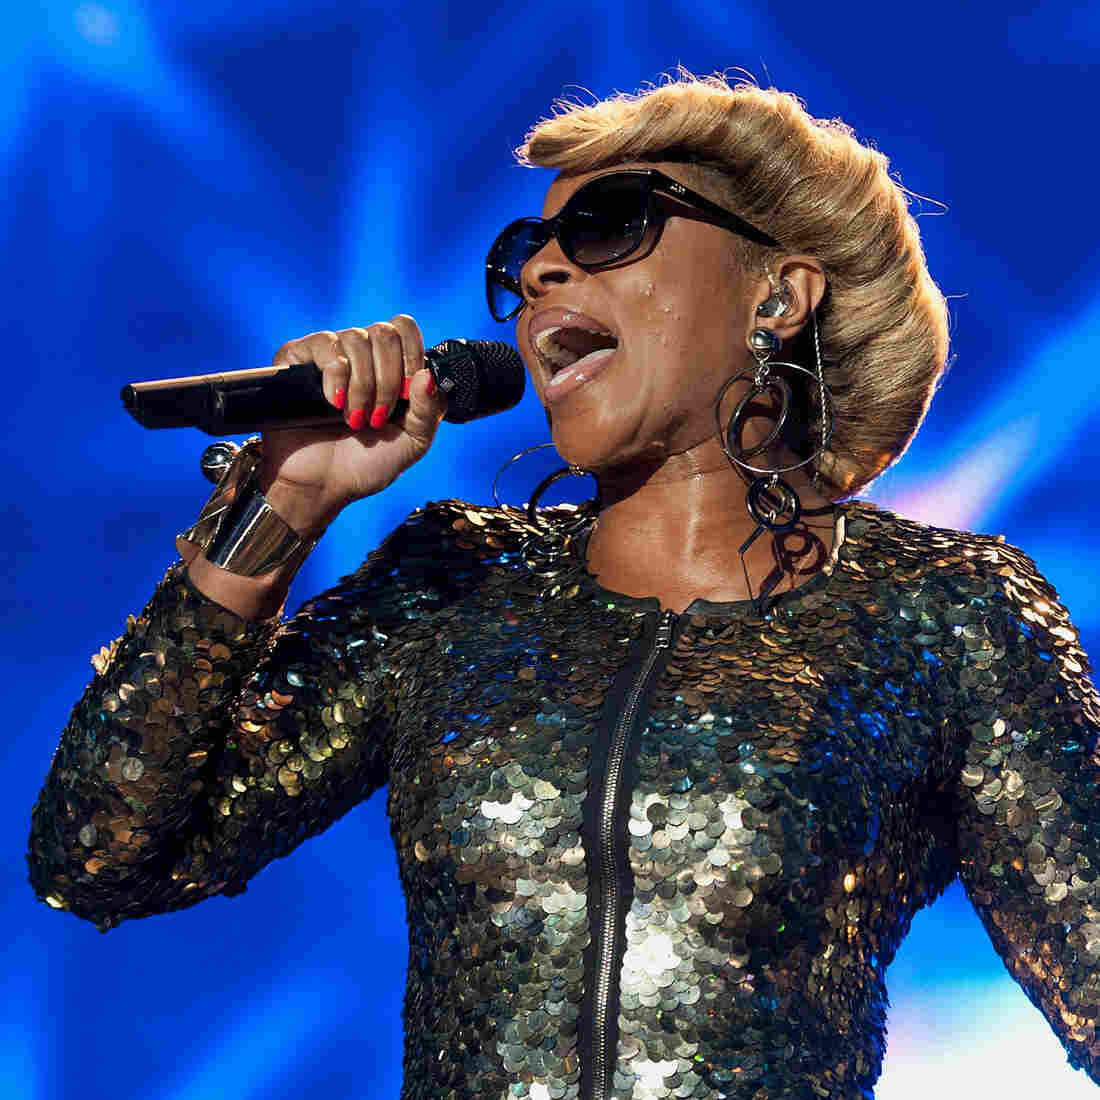 Mary J. Blige performs during the 2012 Essence Music Festival at Louisiana Superdome on July 7.